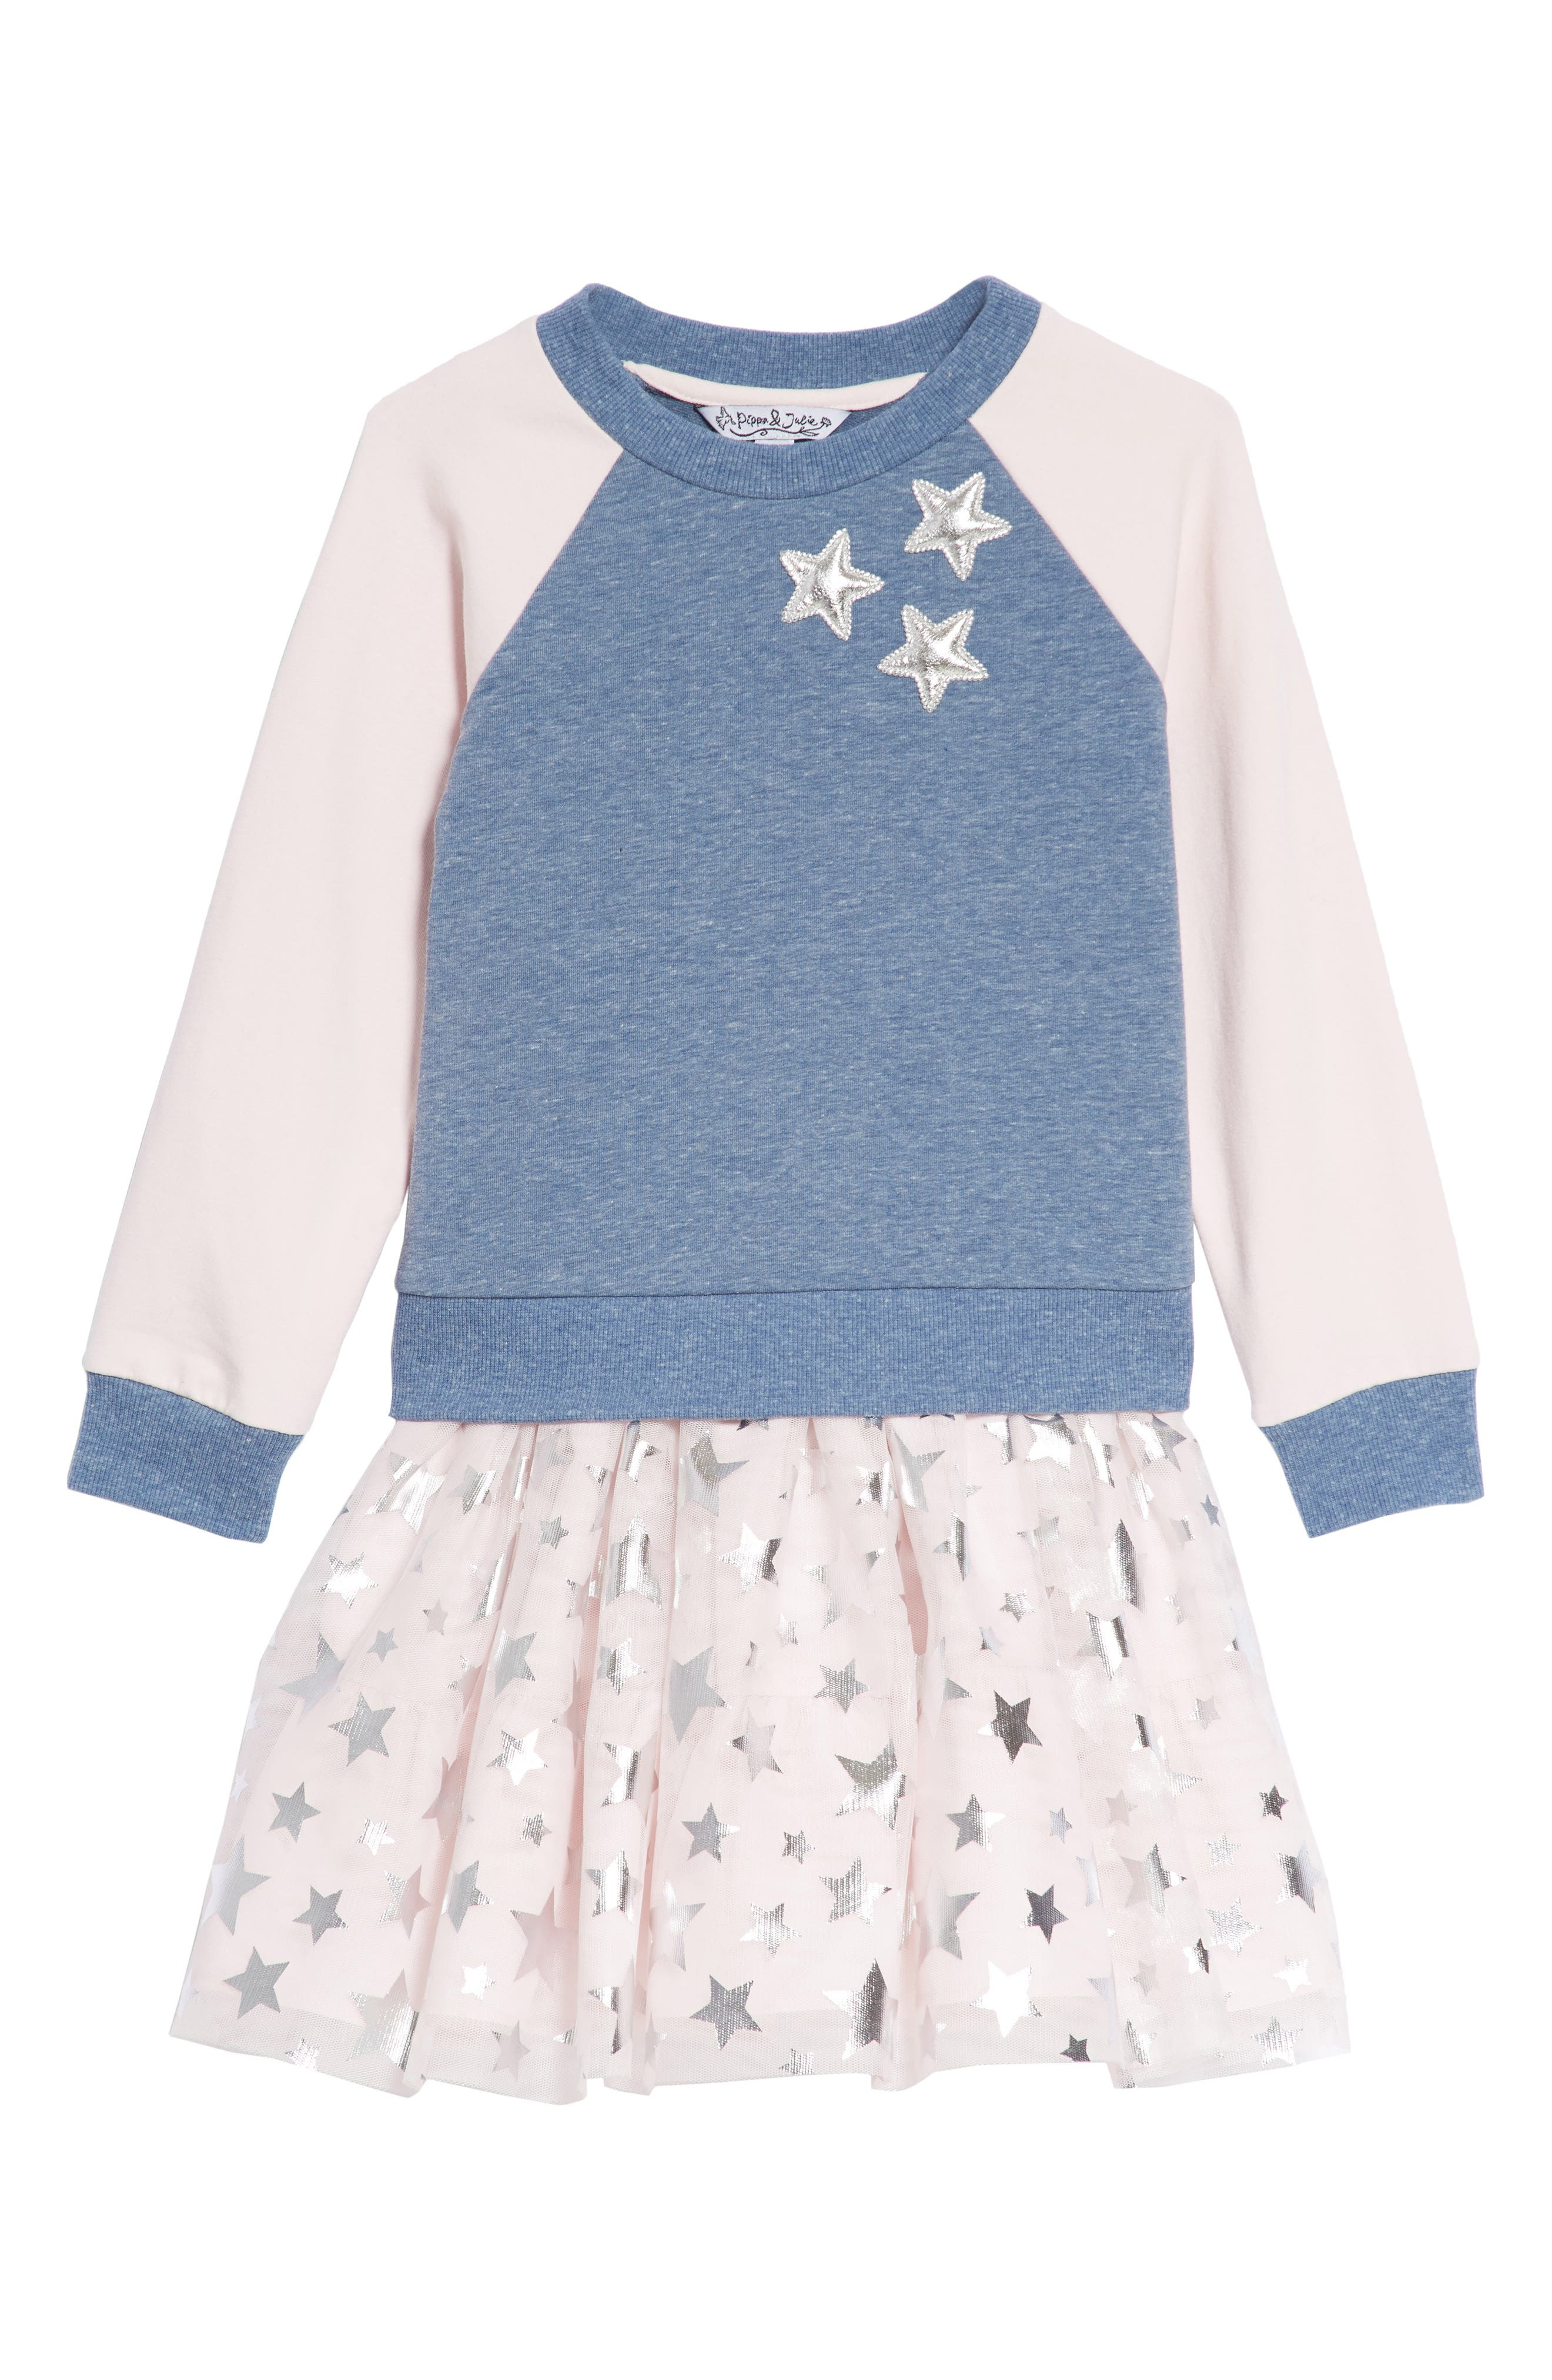 Star Tank Dress & Sweatshirt Set,                             Main thumbnail 1, color,                             401